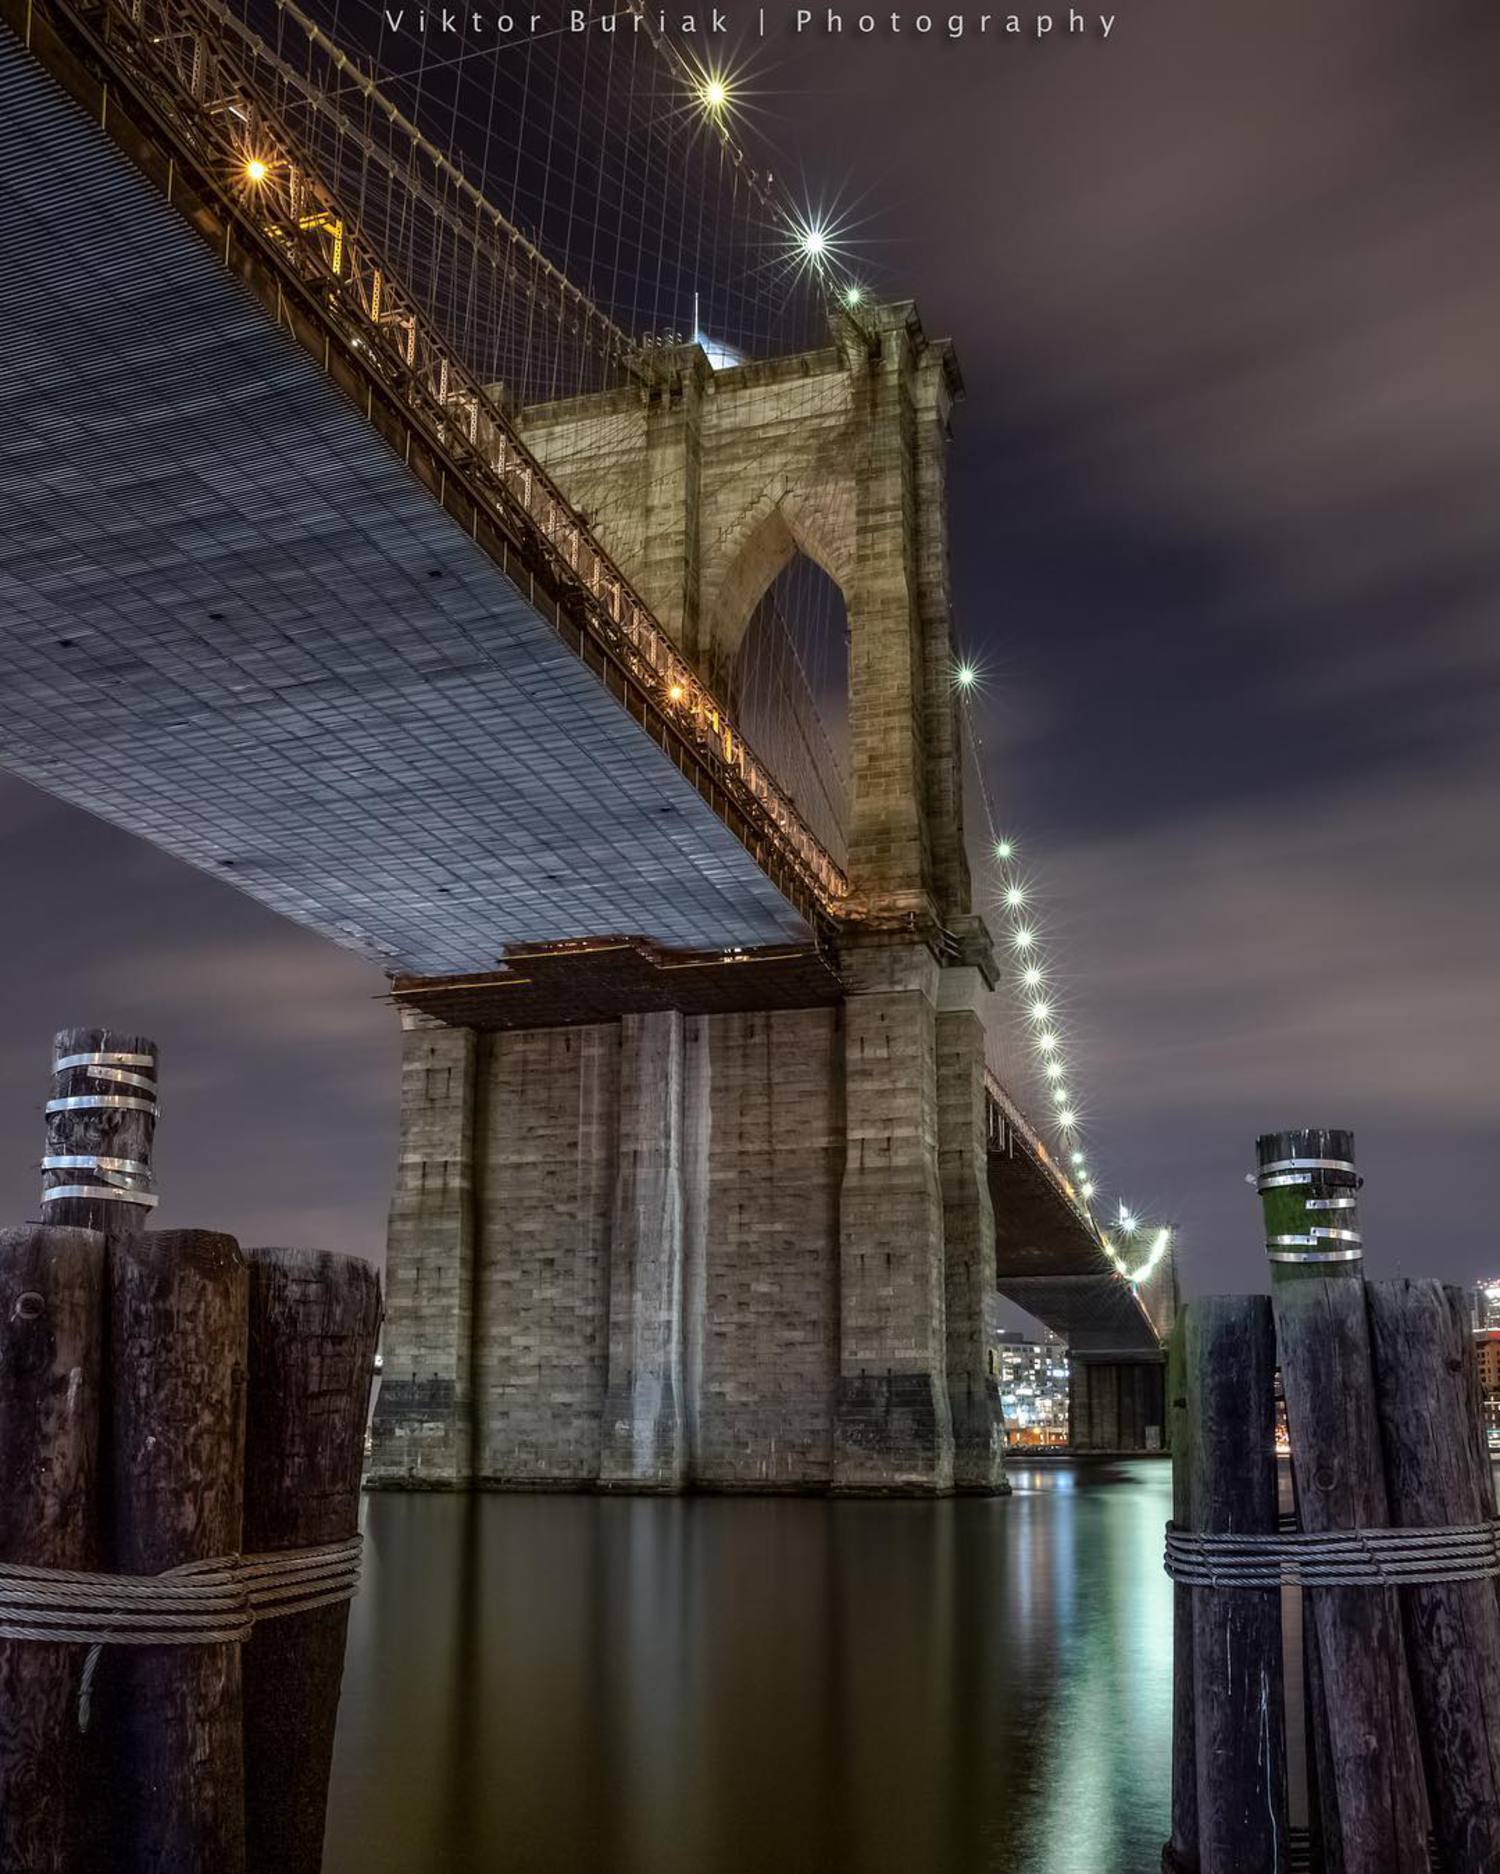 Long exposure shot of the Brooklyn Bridge.  For the morning part of the world, Happy Saturday 🌷 Wishing you a fantastic Easter Weekend ahead 🌸🐰🐤 ••••••••••••••••••••••••••••••••••••••••••• ·         Camera: Canon EOS 5D Mark III DSLR ·           Lens: Canon EF 24-70mm f/2.8L II USM Lens ·         Aperture: F/14 ·         ISO: 100 ·         Edit: Adobe Photoshop/Instagram ·         Shot: Handled/Manual Mode ·         Raw format ••••••••••••••••••••••••••••••••••••••••••• #Insta_America #igPodium_Mag #my_flagrants #IG_GREAT_SHOTS #TheCity_Life #igPodium #ig_unitedstates_ #myflagrants #igs_america #istanbulda1yer #inspiring_photography_admired #ig_NorthAmerica #cbviews #made_in_ny #ig_all_americas #igs_photos #icapture_nyc #what_i_saw_in_nyc #myCity_life #udog_peopleandplaces #ig_unitedstates_ #Nycprimeshot #ic_thecity #ig_nycity #usaprimeshot #nycprime_ladies #globalprimesplash #rsa_streetview #loves_NYC #ig_shotz_bridges #kings_shots